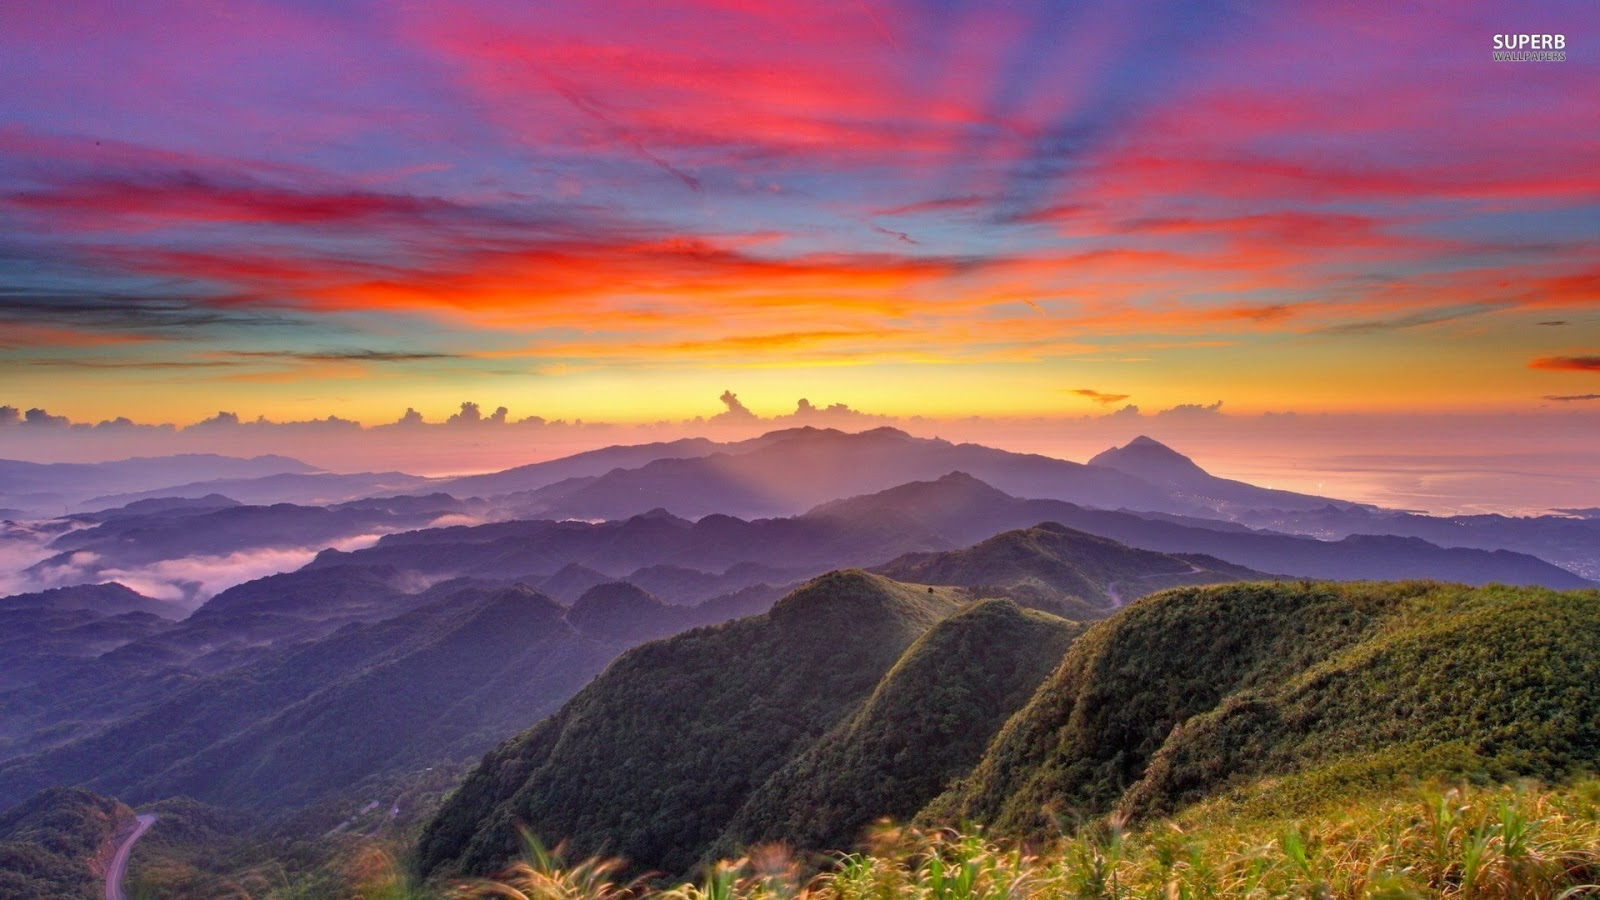 beautiful mountains sunrise wallpaper - photo #5